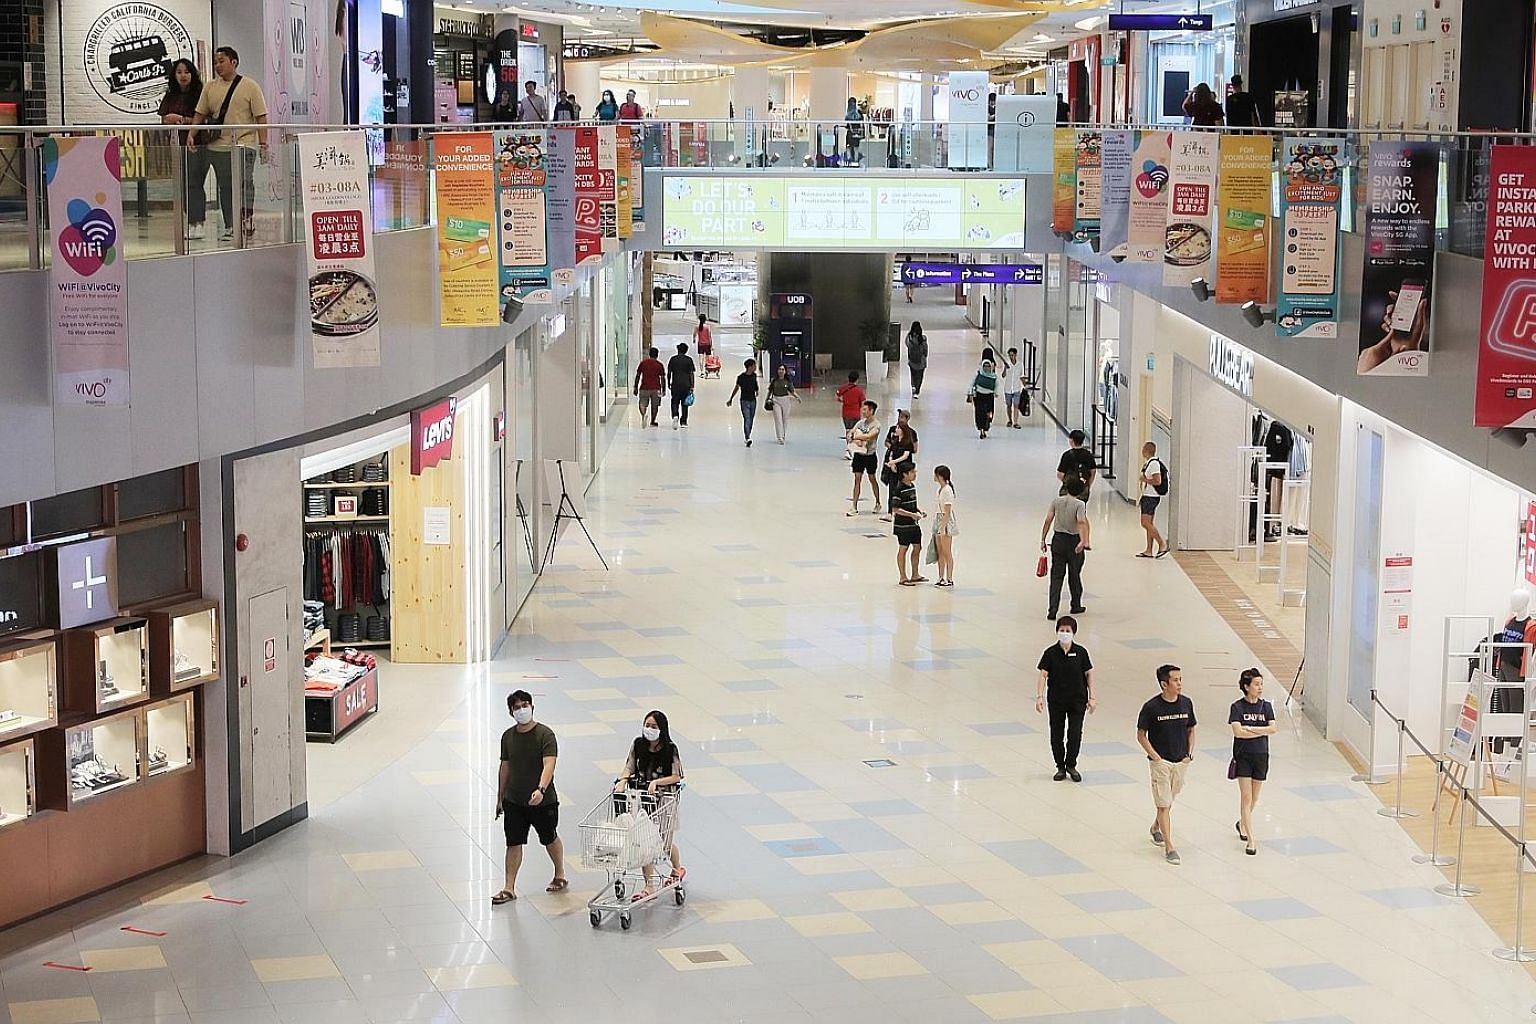 Shoppers at VivoCity a few days before the circuit breaker took effect in April. Singapore's first standard on e-commerce transactions will serve as a practical reference for e-retailers and e-marketplaces. It will also support Enterprise Singapore's